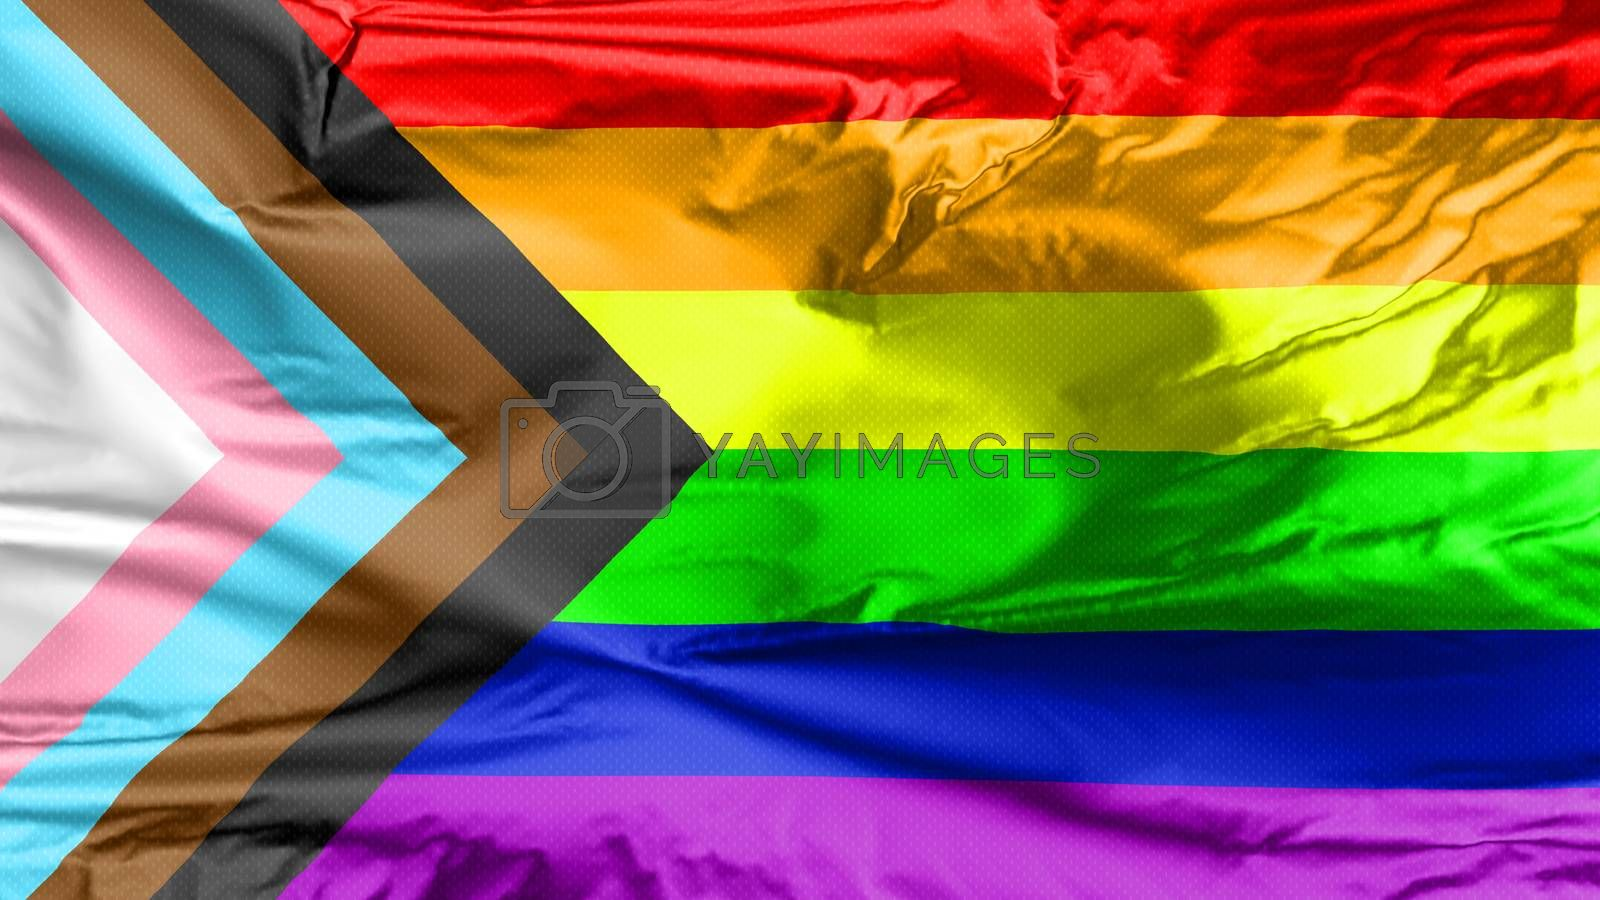 LGBT Rainbow Flag with inclusion and progression colors. Symbol of lesbian, gay, bisexual & transgender community. Black and brown stripes to represent marginalised LGBT also with the colours pink, light blue and white, which are sign of the Transgender Pride Flag.